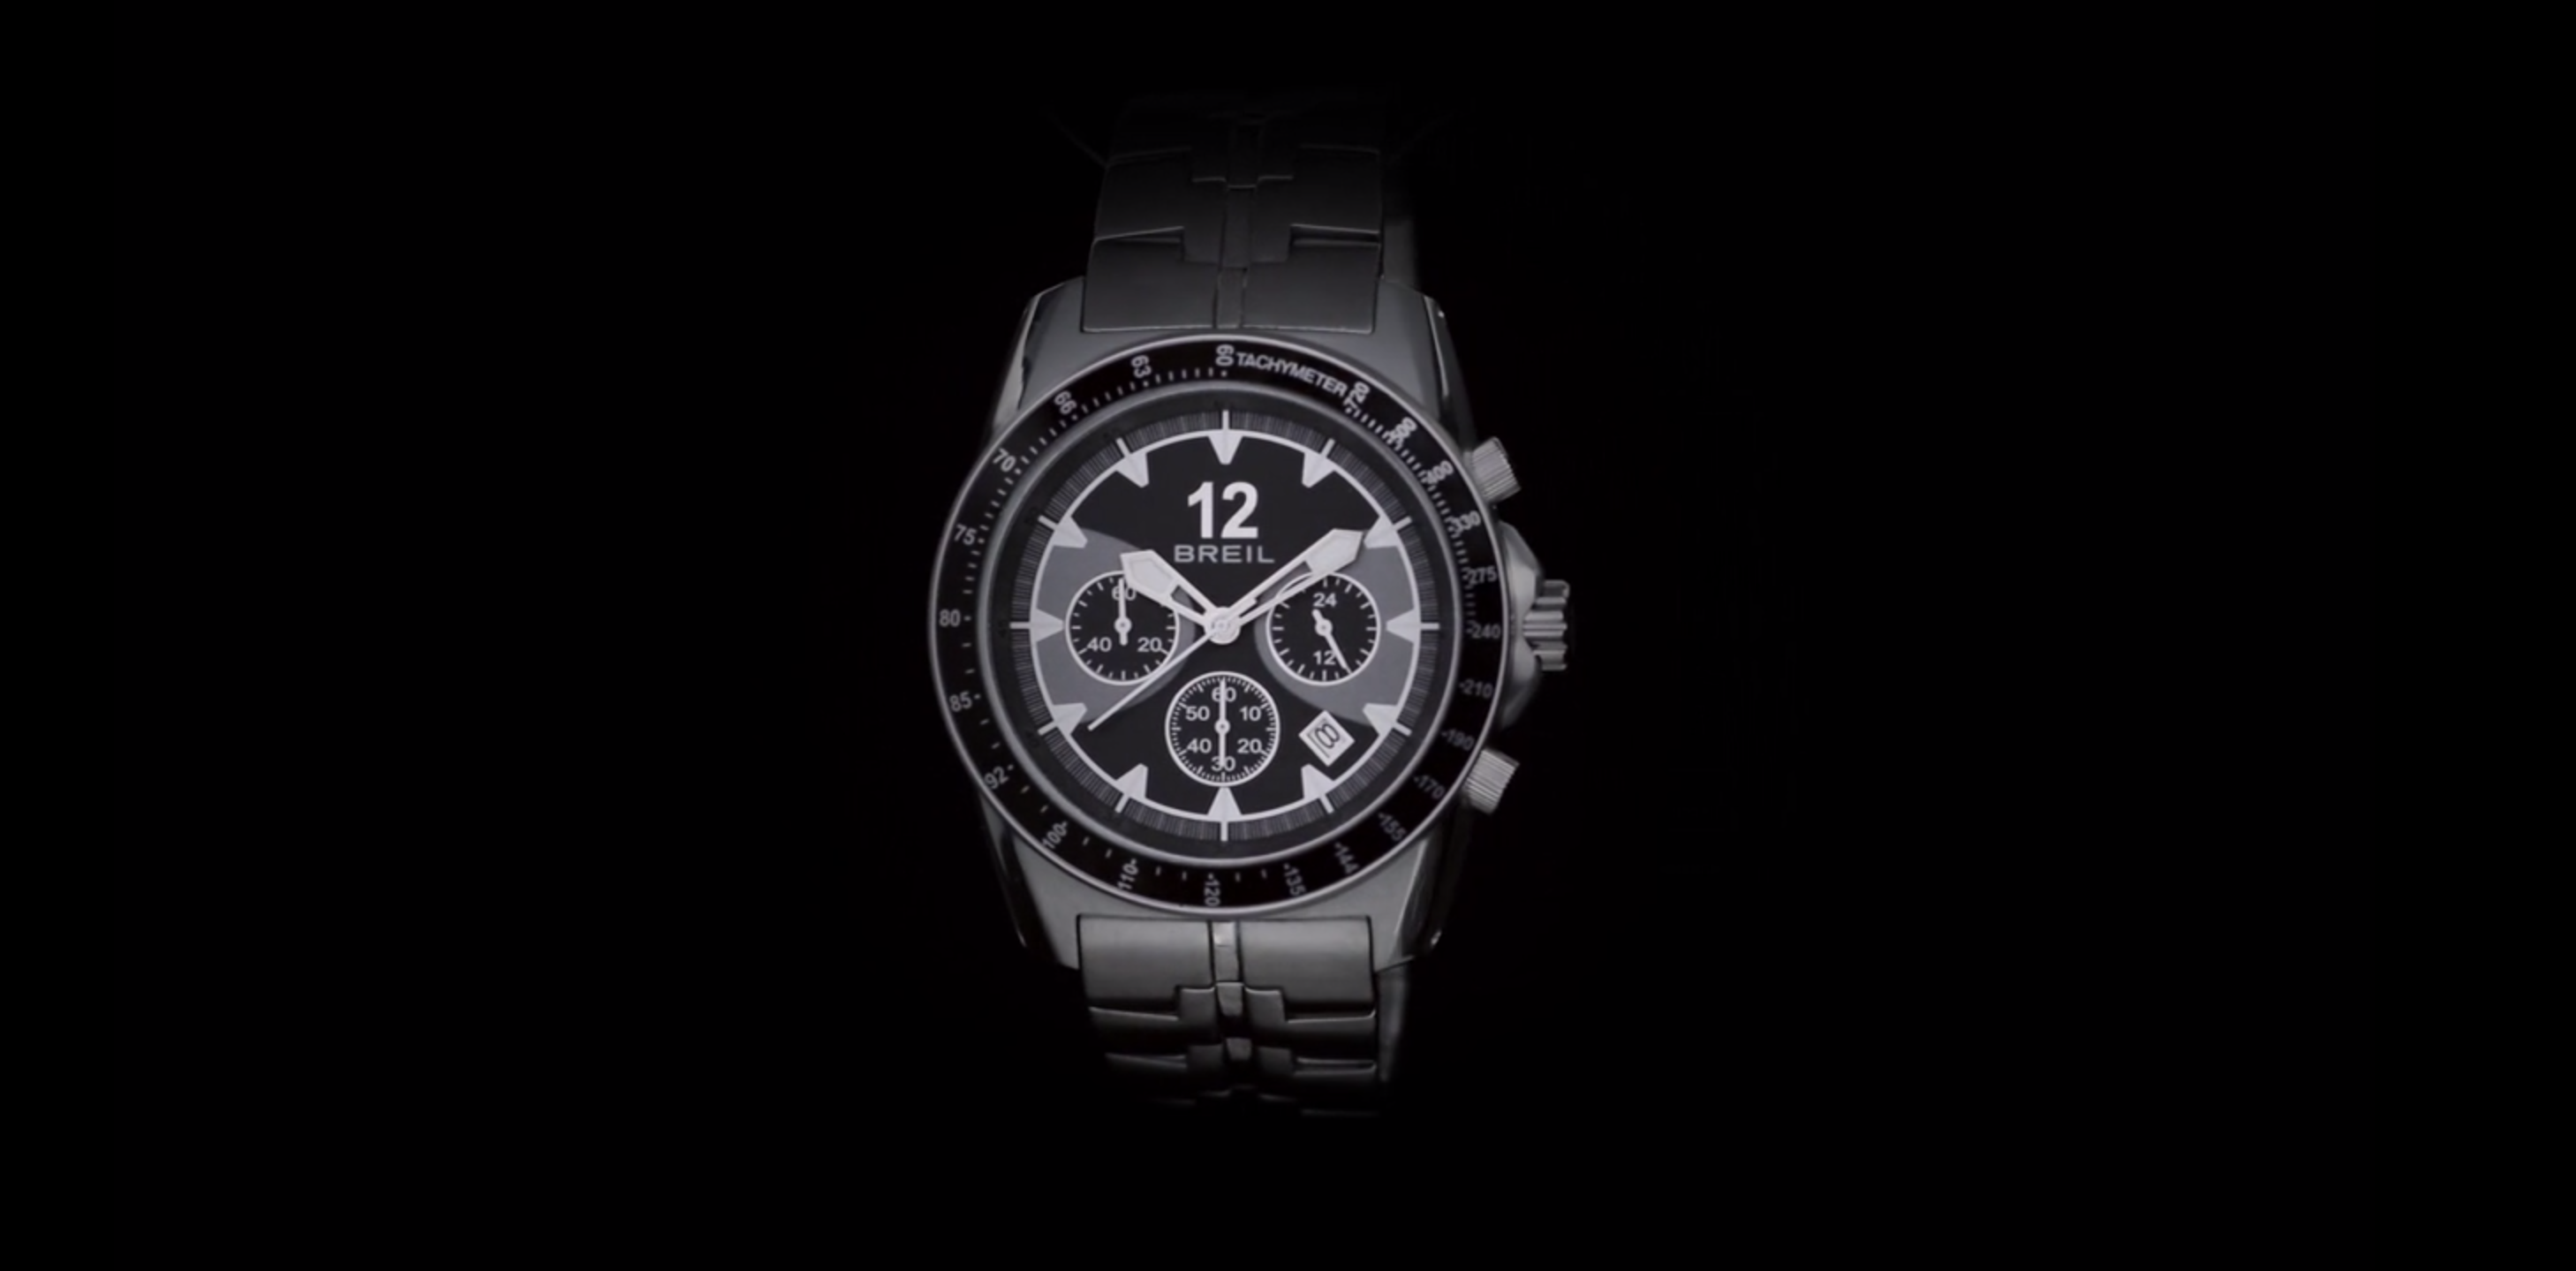 Breil - Packshot Watches